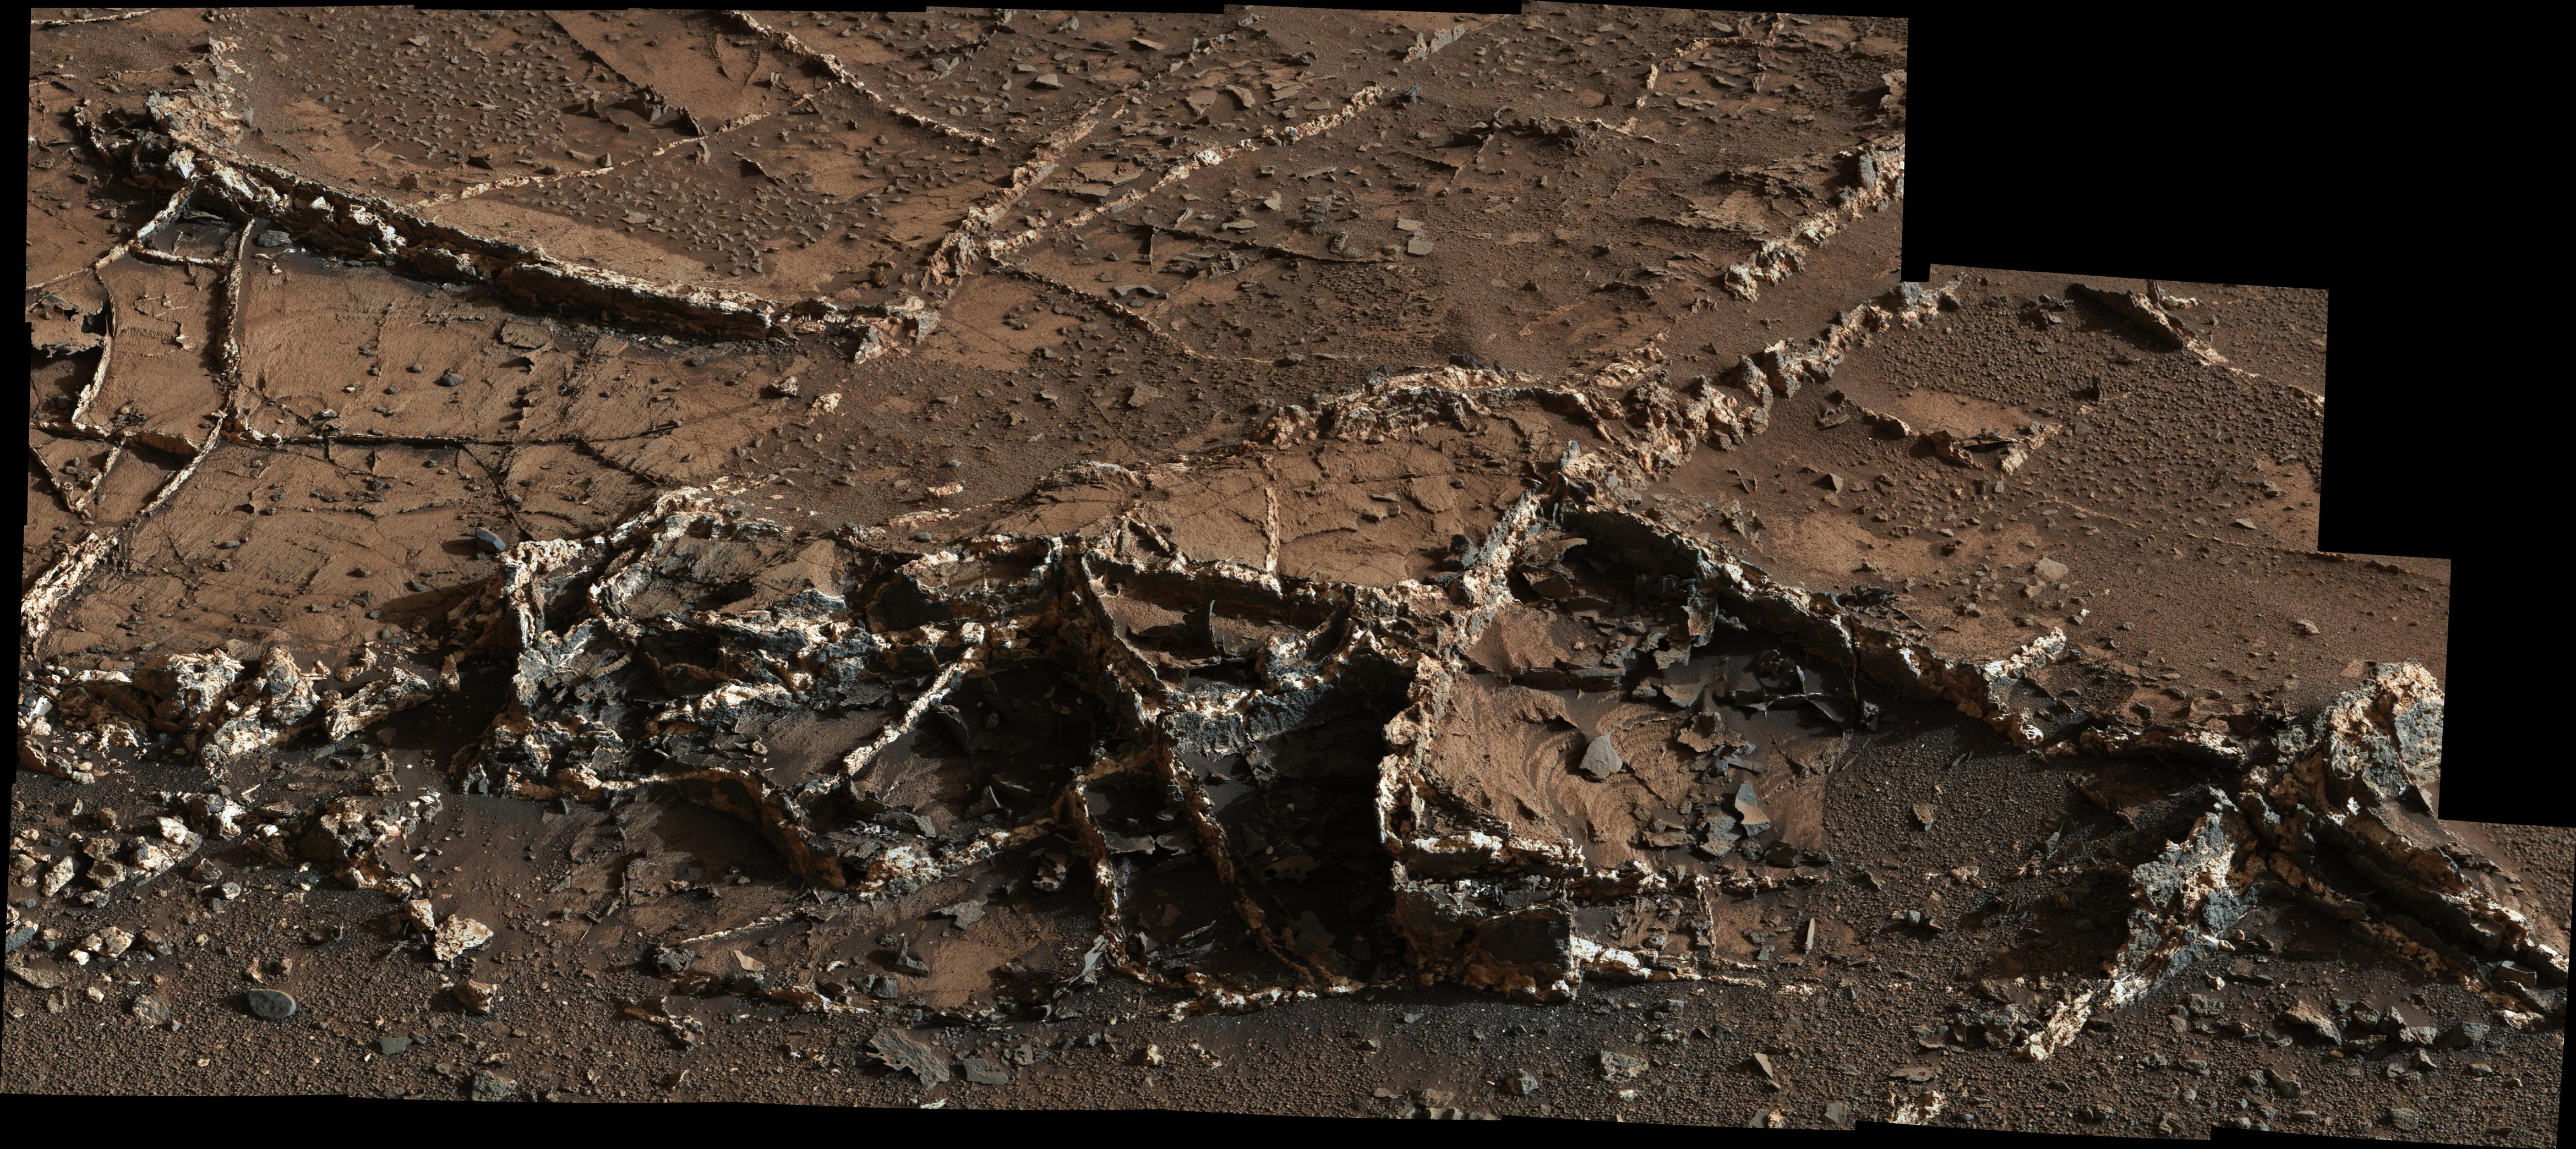 Space Images | Prominent Veins at 'Garden City' on Mount ...